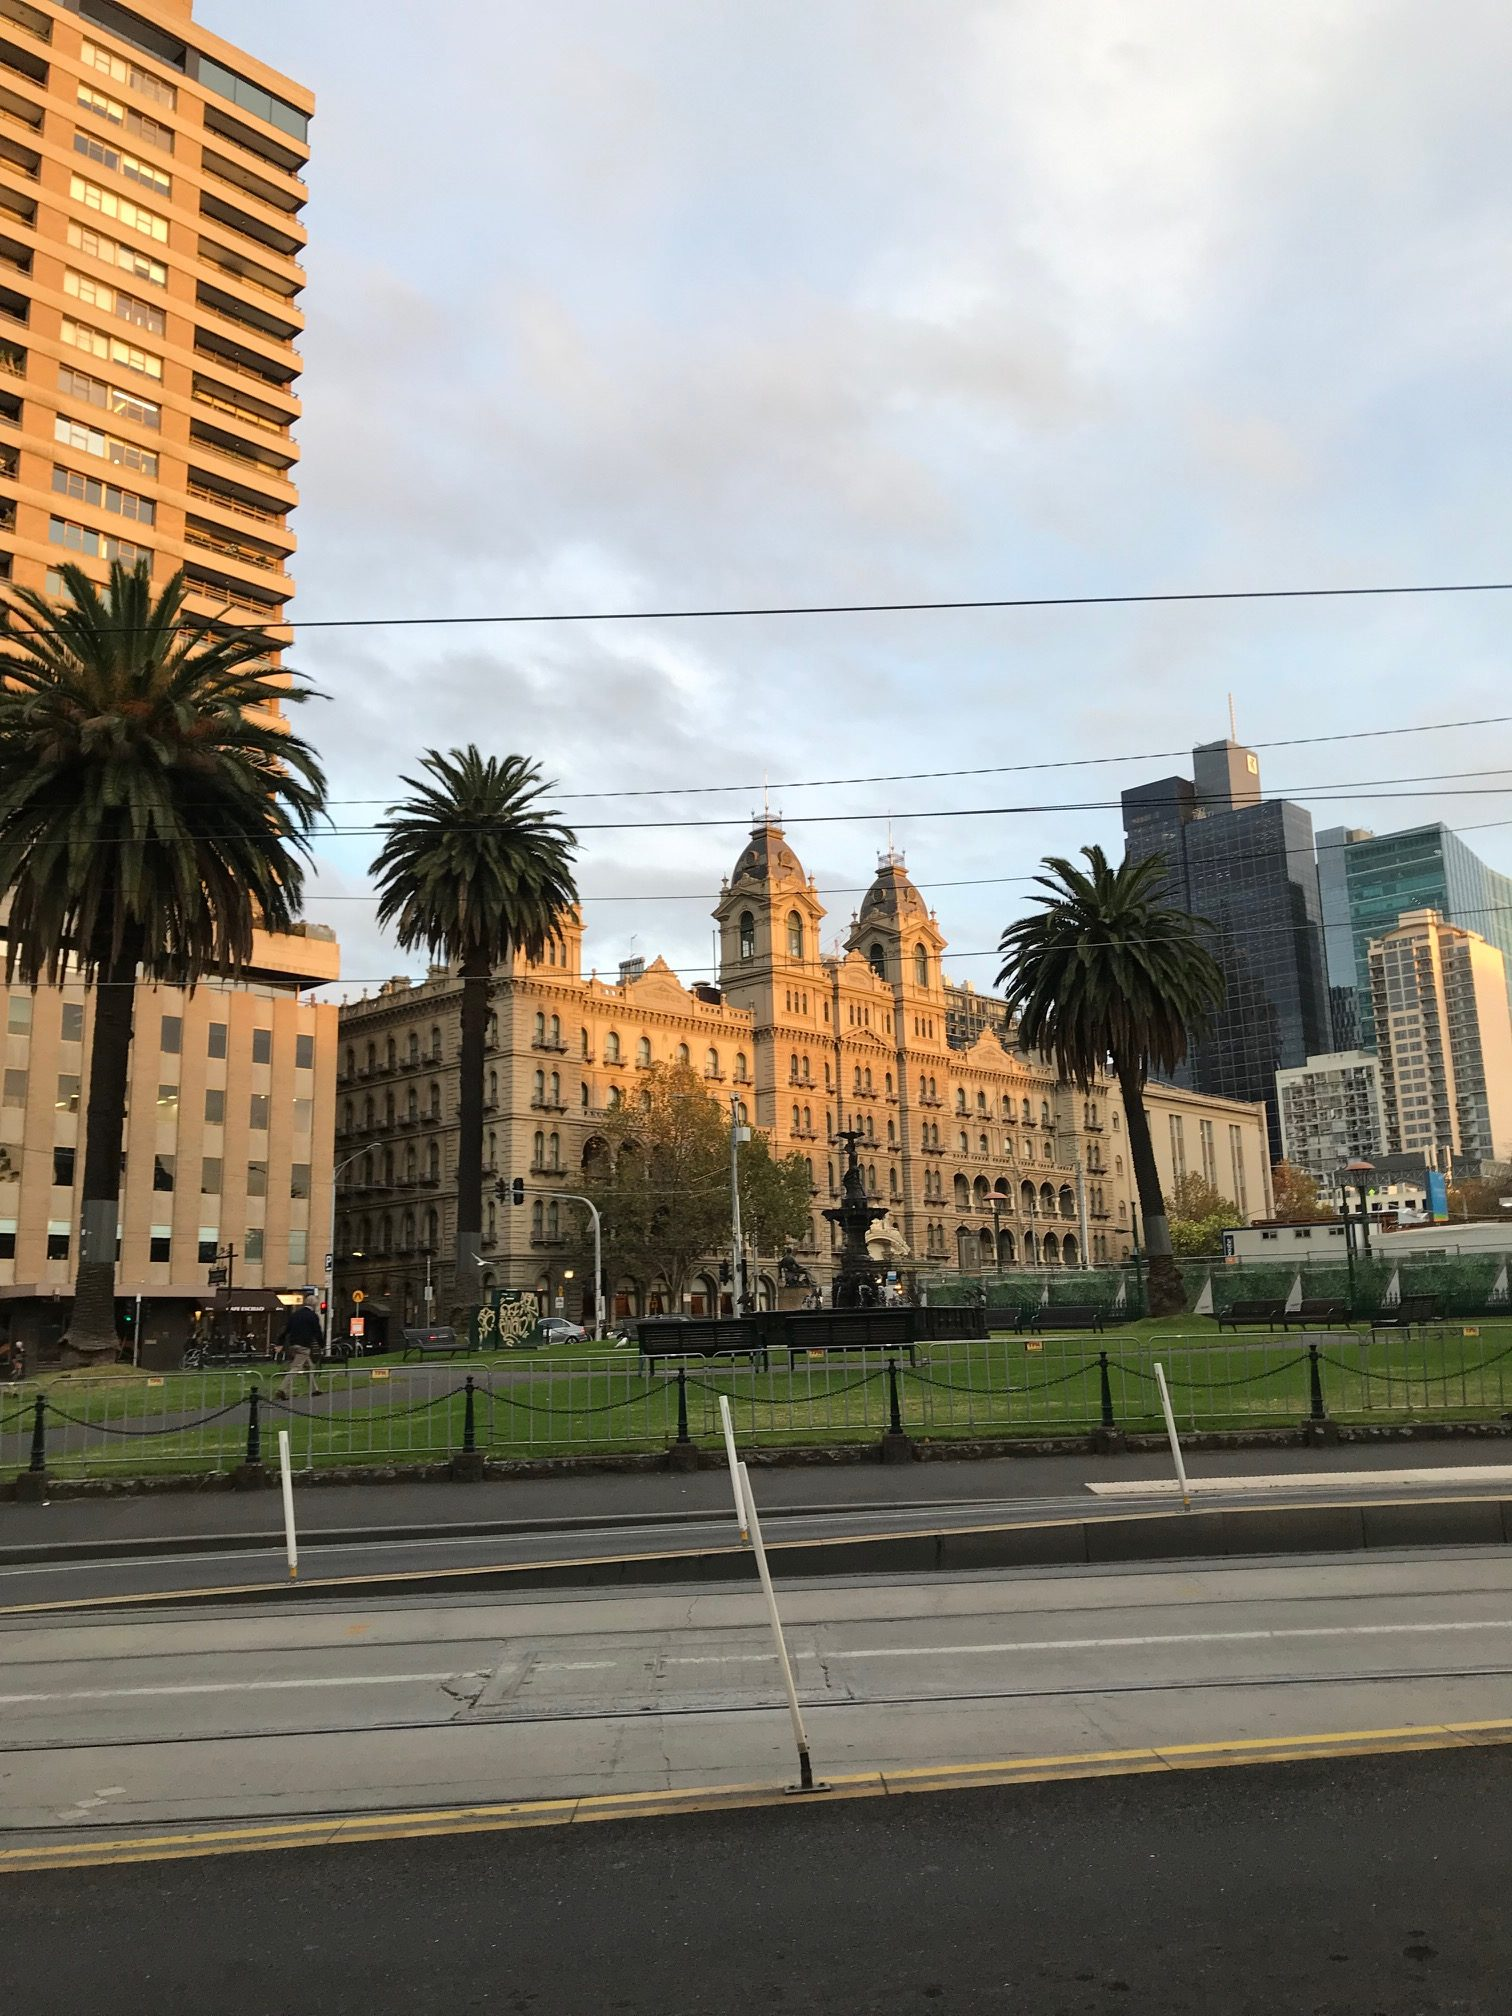 Gordon Reserve East Melbourne with the iconic Hotel Windsor in the background.